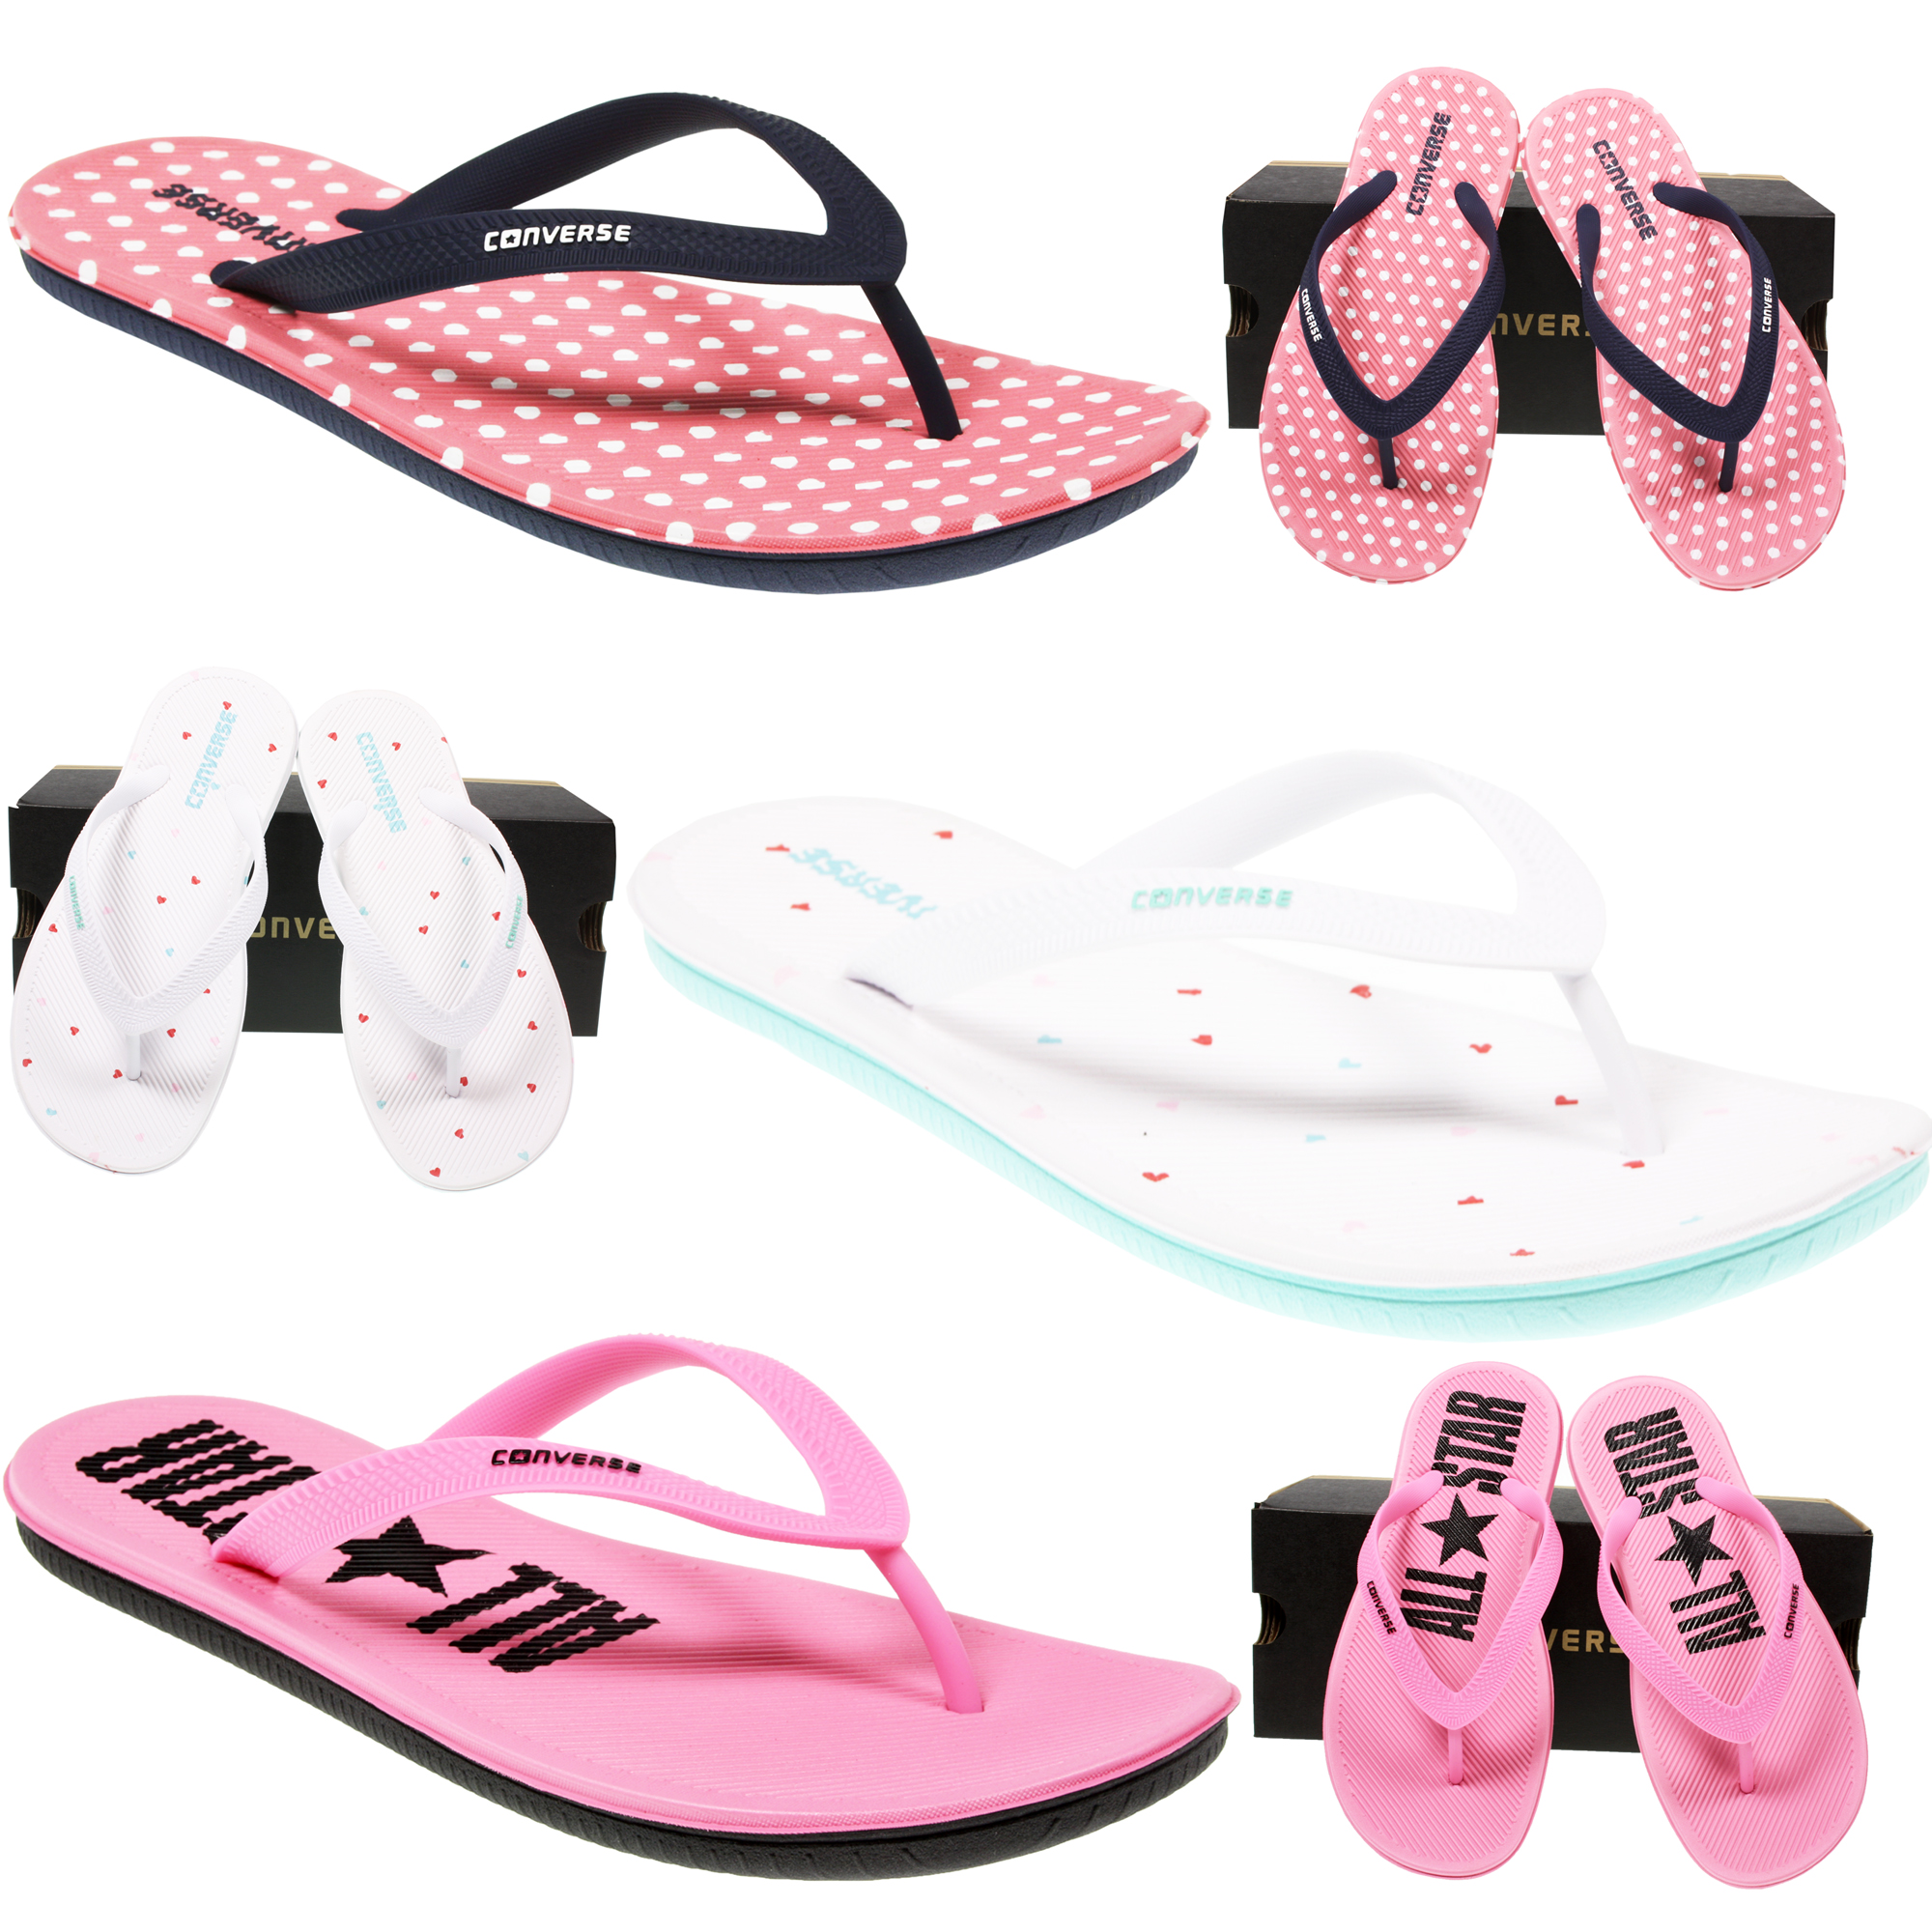 20c1558b9899 CONVERSE WOMENS ALL STAR SANDSTAR CTAS FLIP FLOP THONG SLIPPER ...